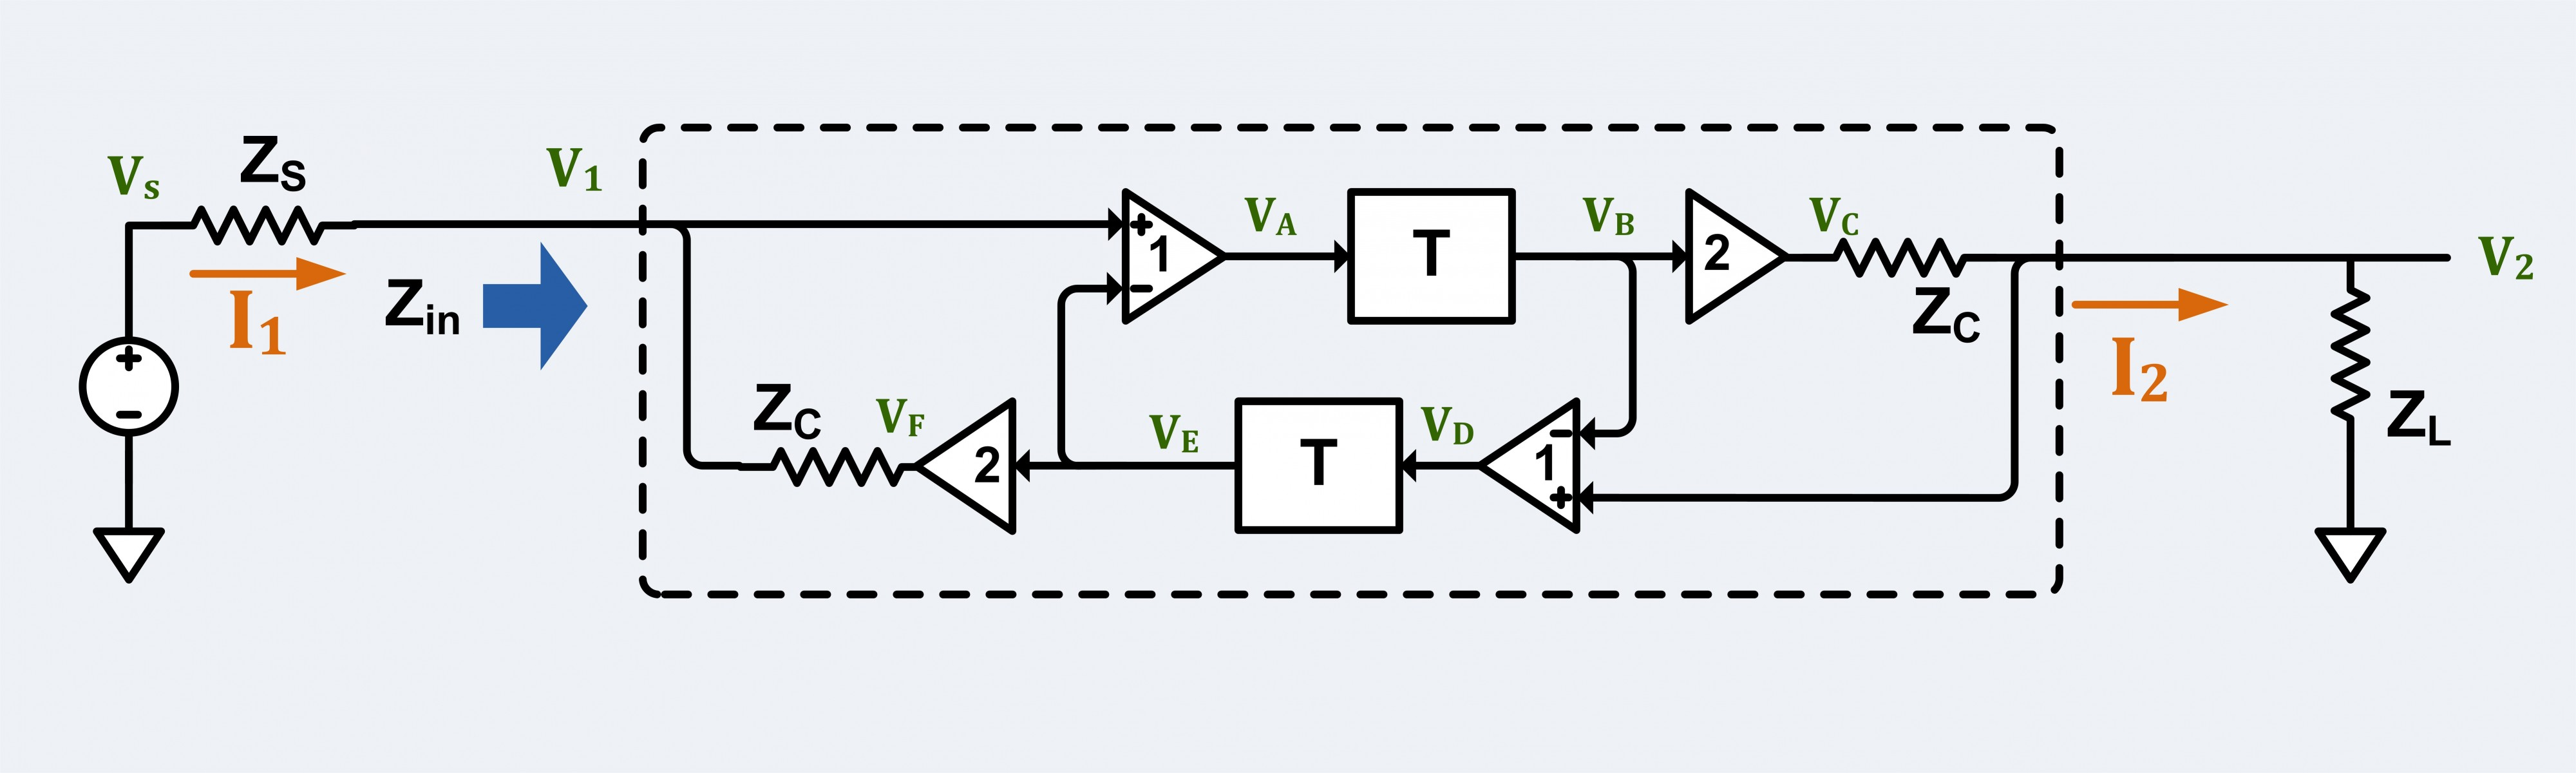 Transmission Line Circuit for Reflection Coefficients